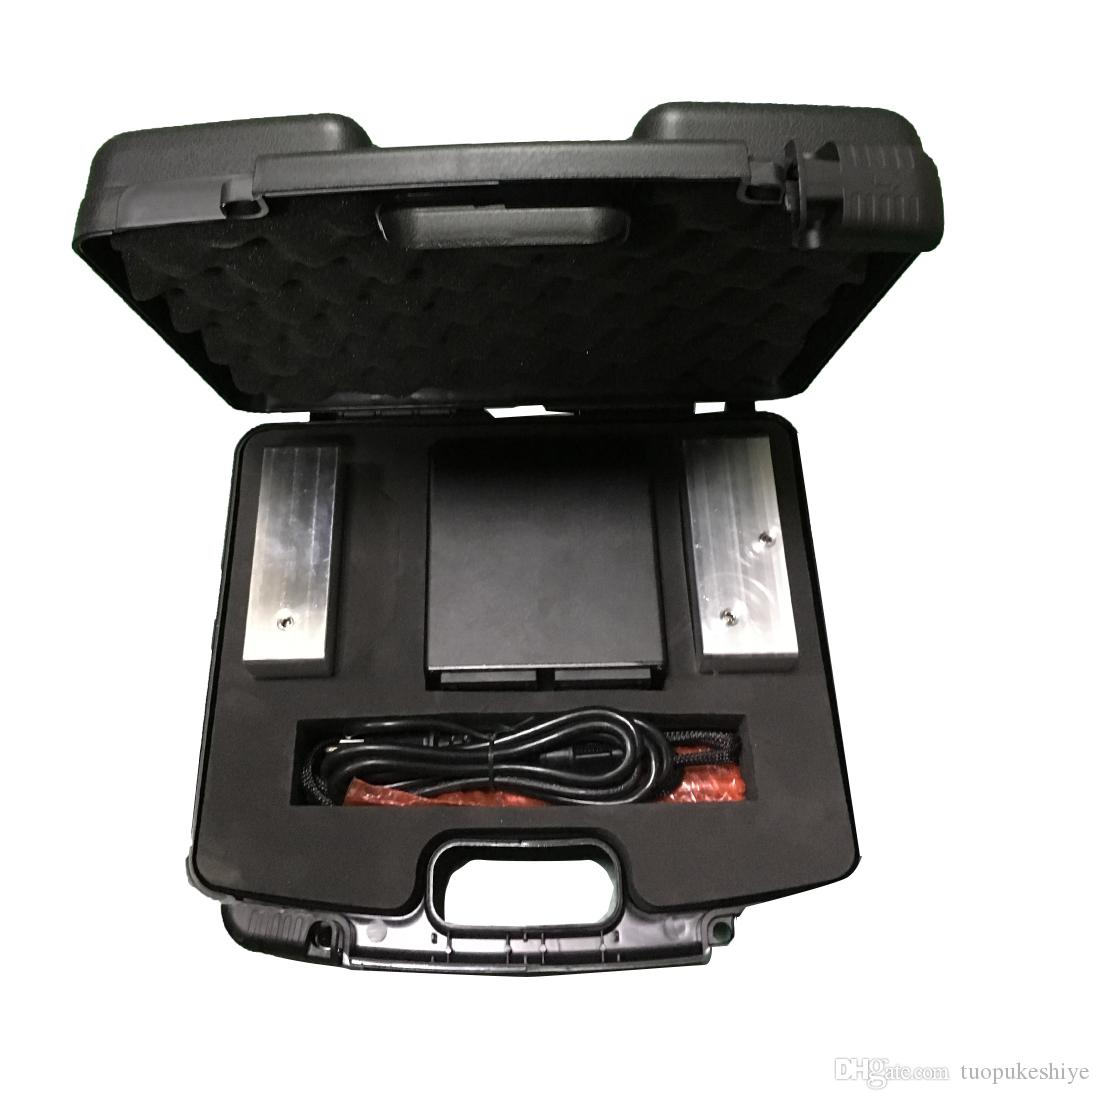 Solid 6061 Aluminium 3x5in Rosin Press Plates include heater rod dual controller PID with carrying case BY DHL